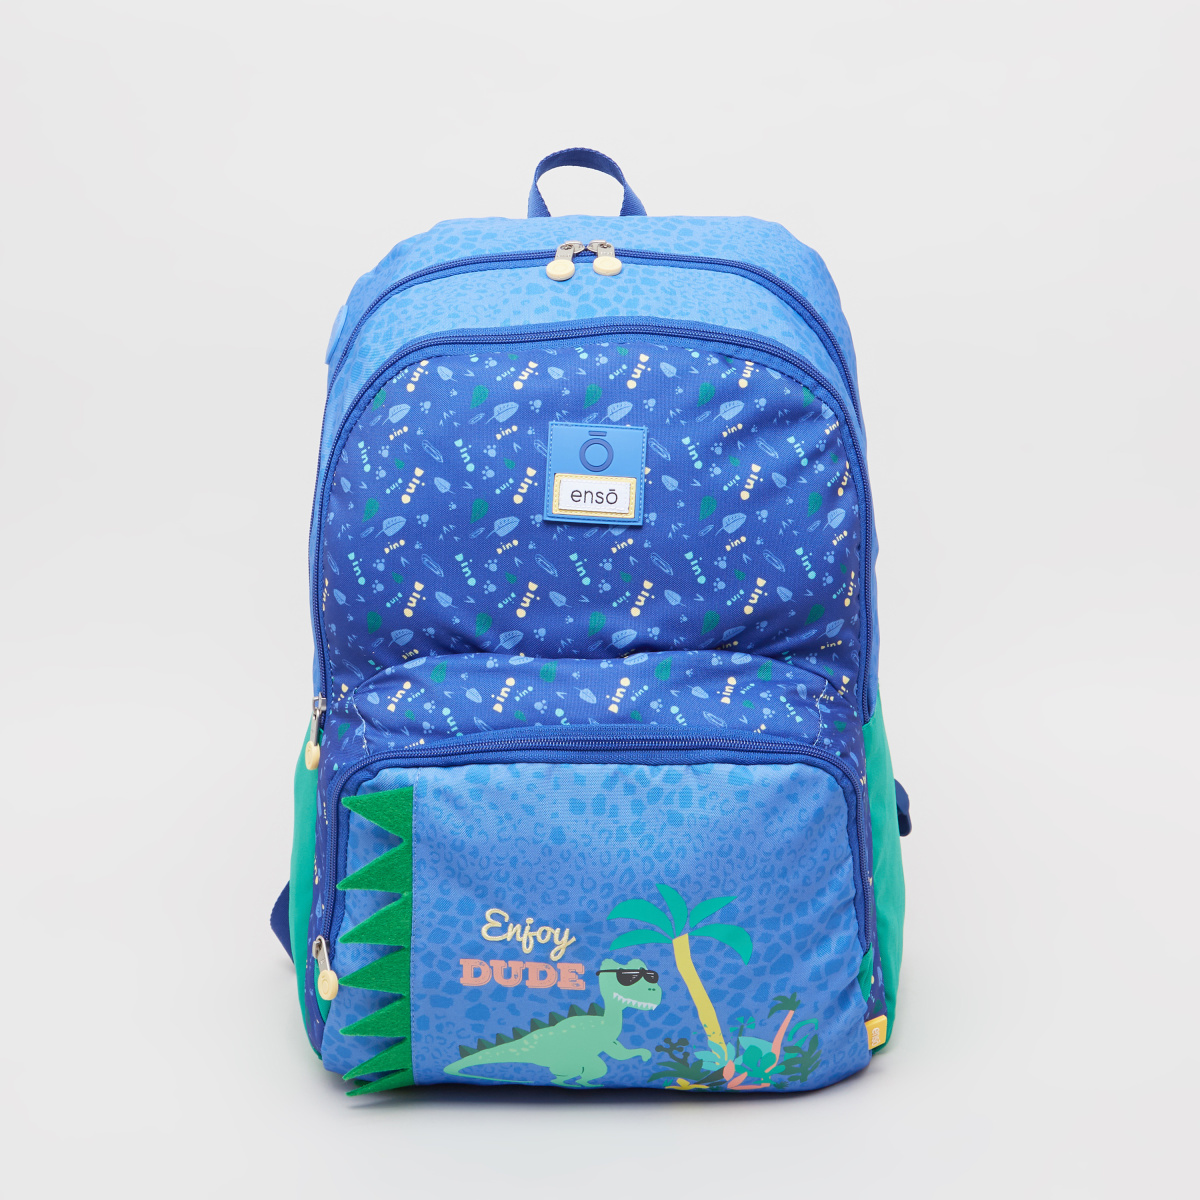 Enso Dino Print Backpack with Front Pocket - 33x46x17 cms